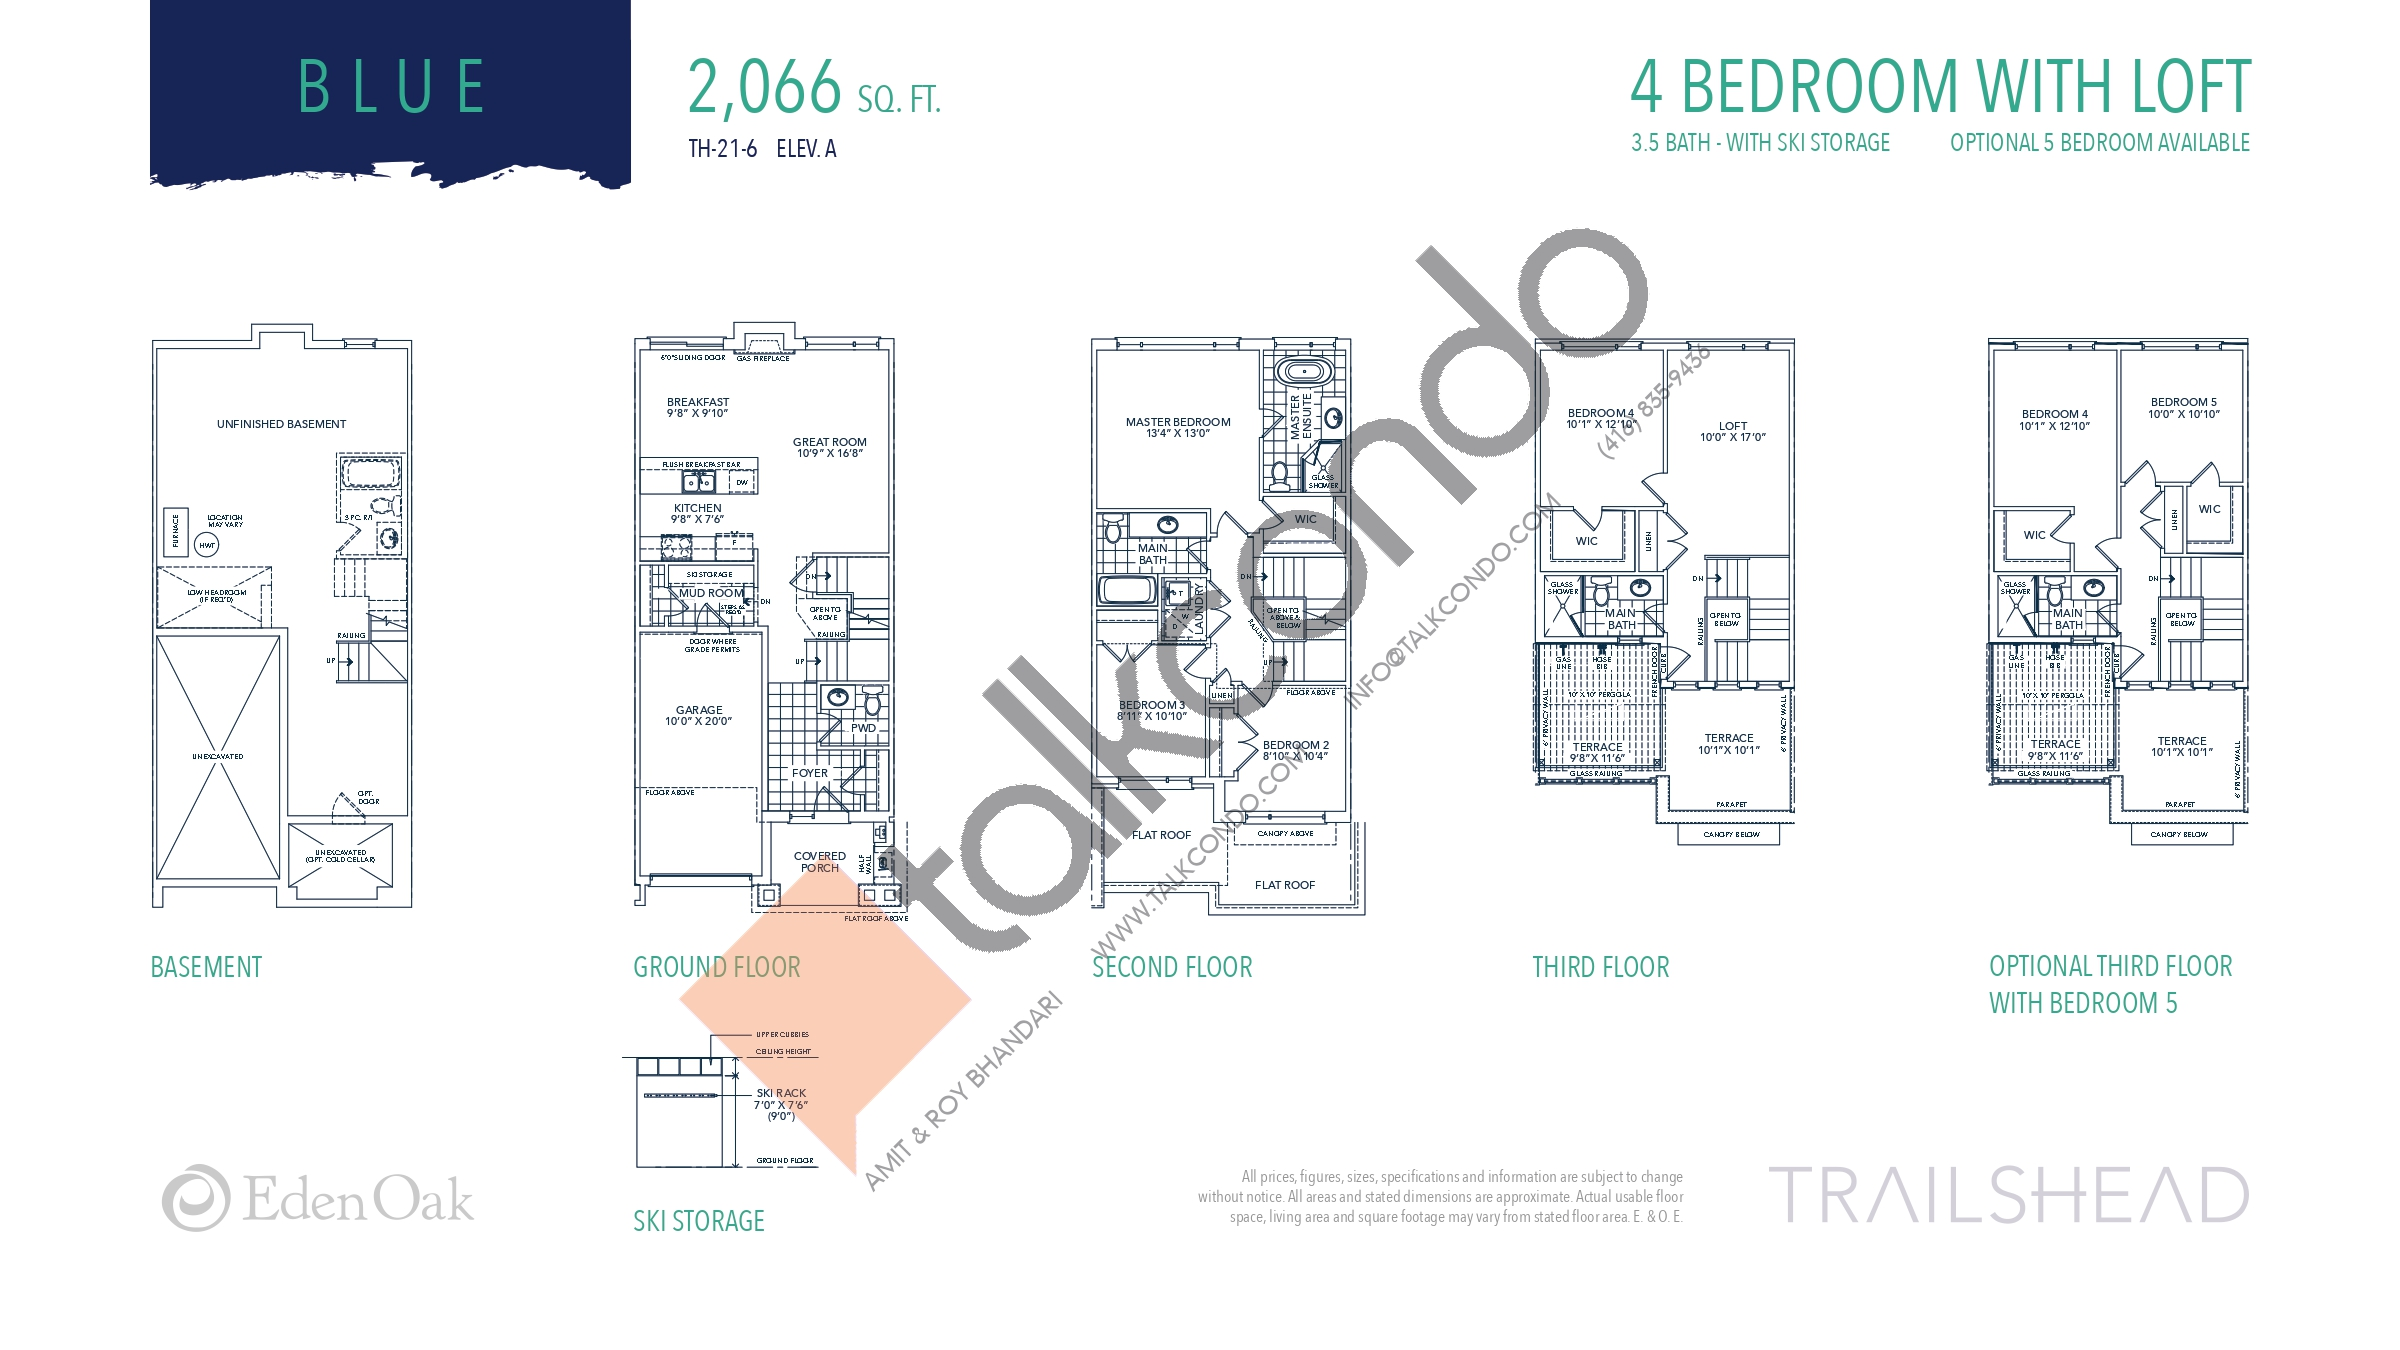 Blue Floor Plan at Trailshead Towns - 2066 sq.ft